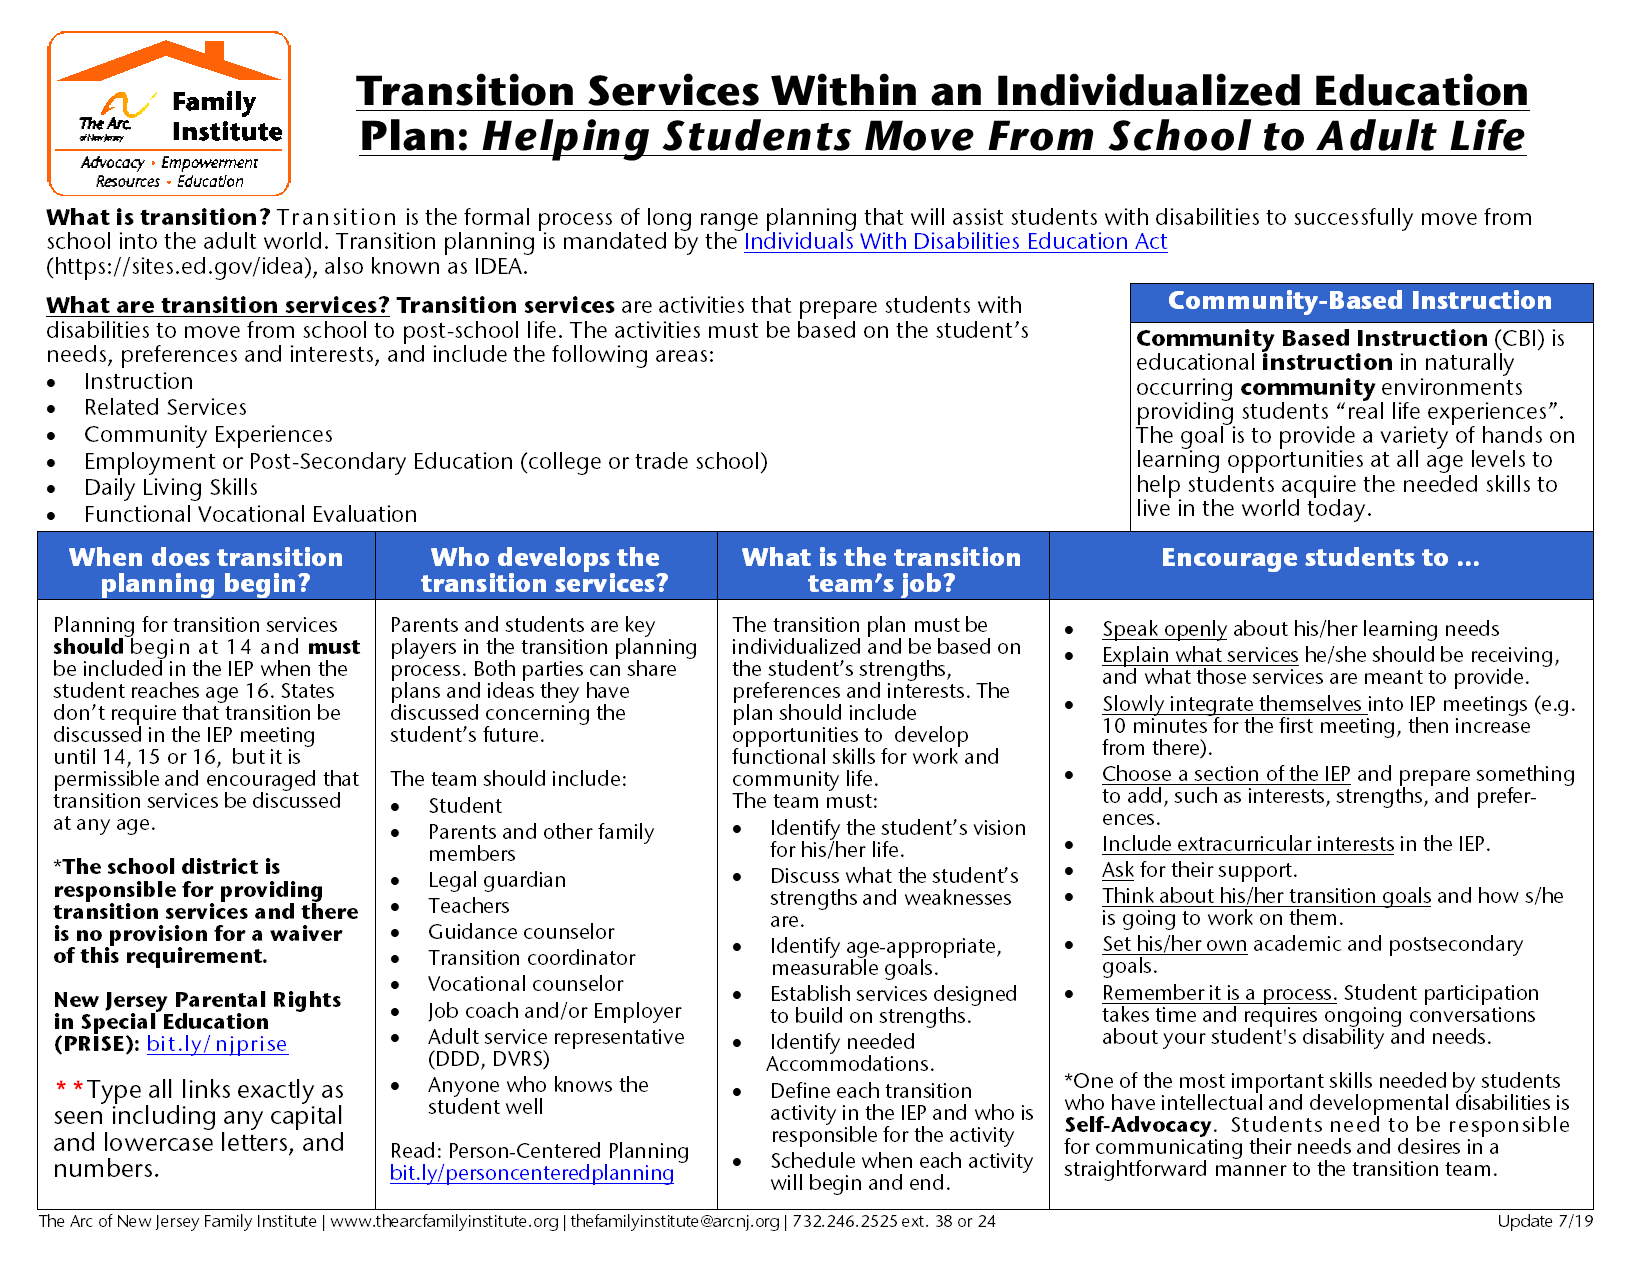 Transition Services Within an Individualized Education Plan: Helping Students Move From School to Adult Life